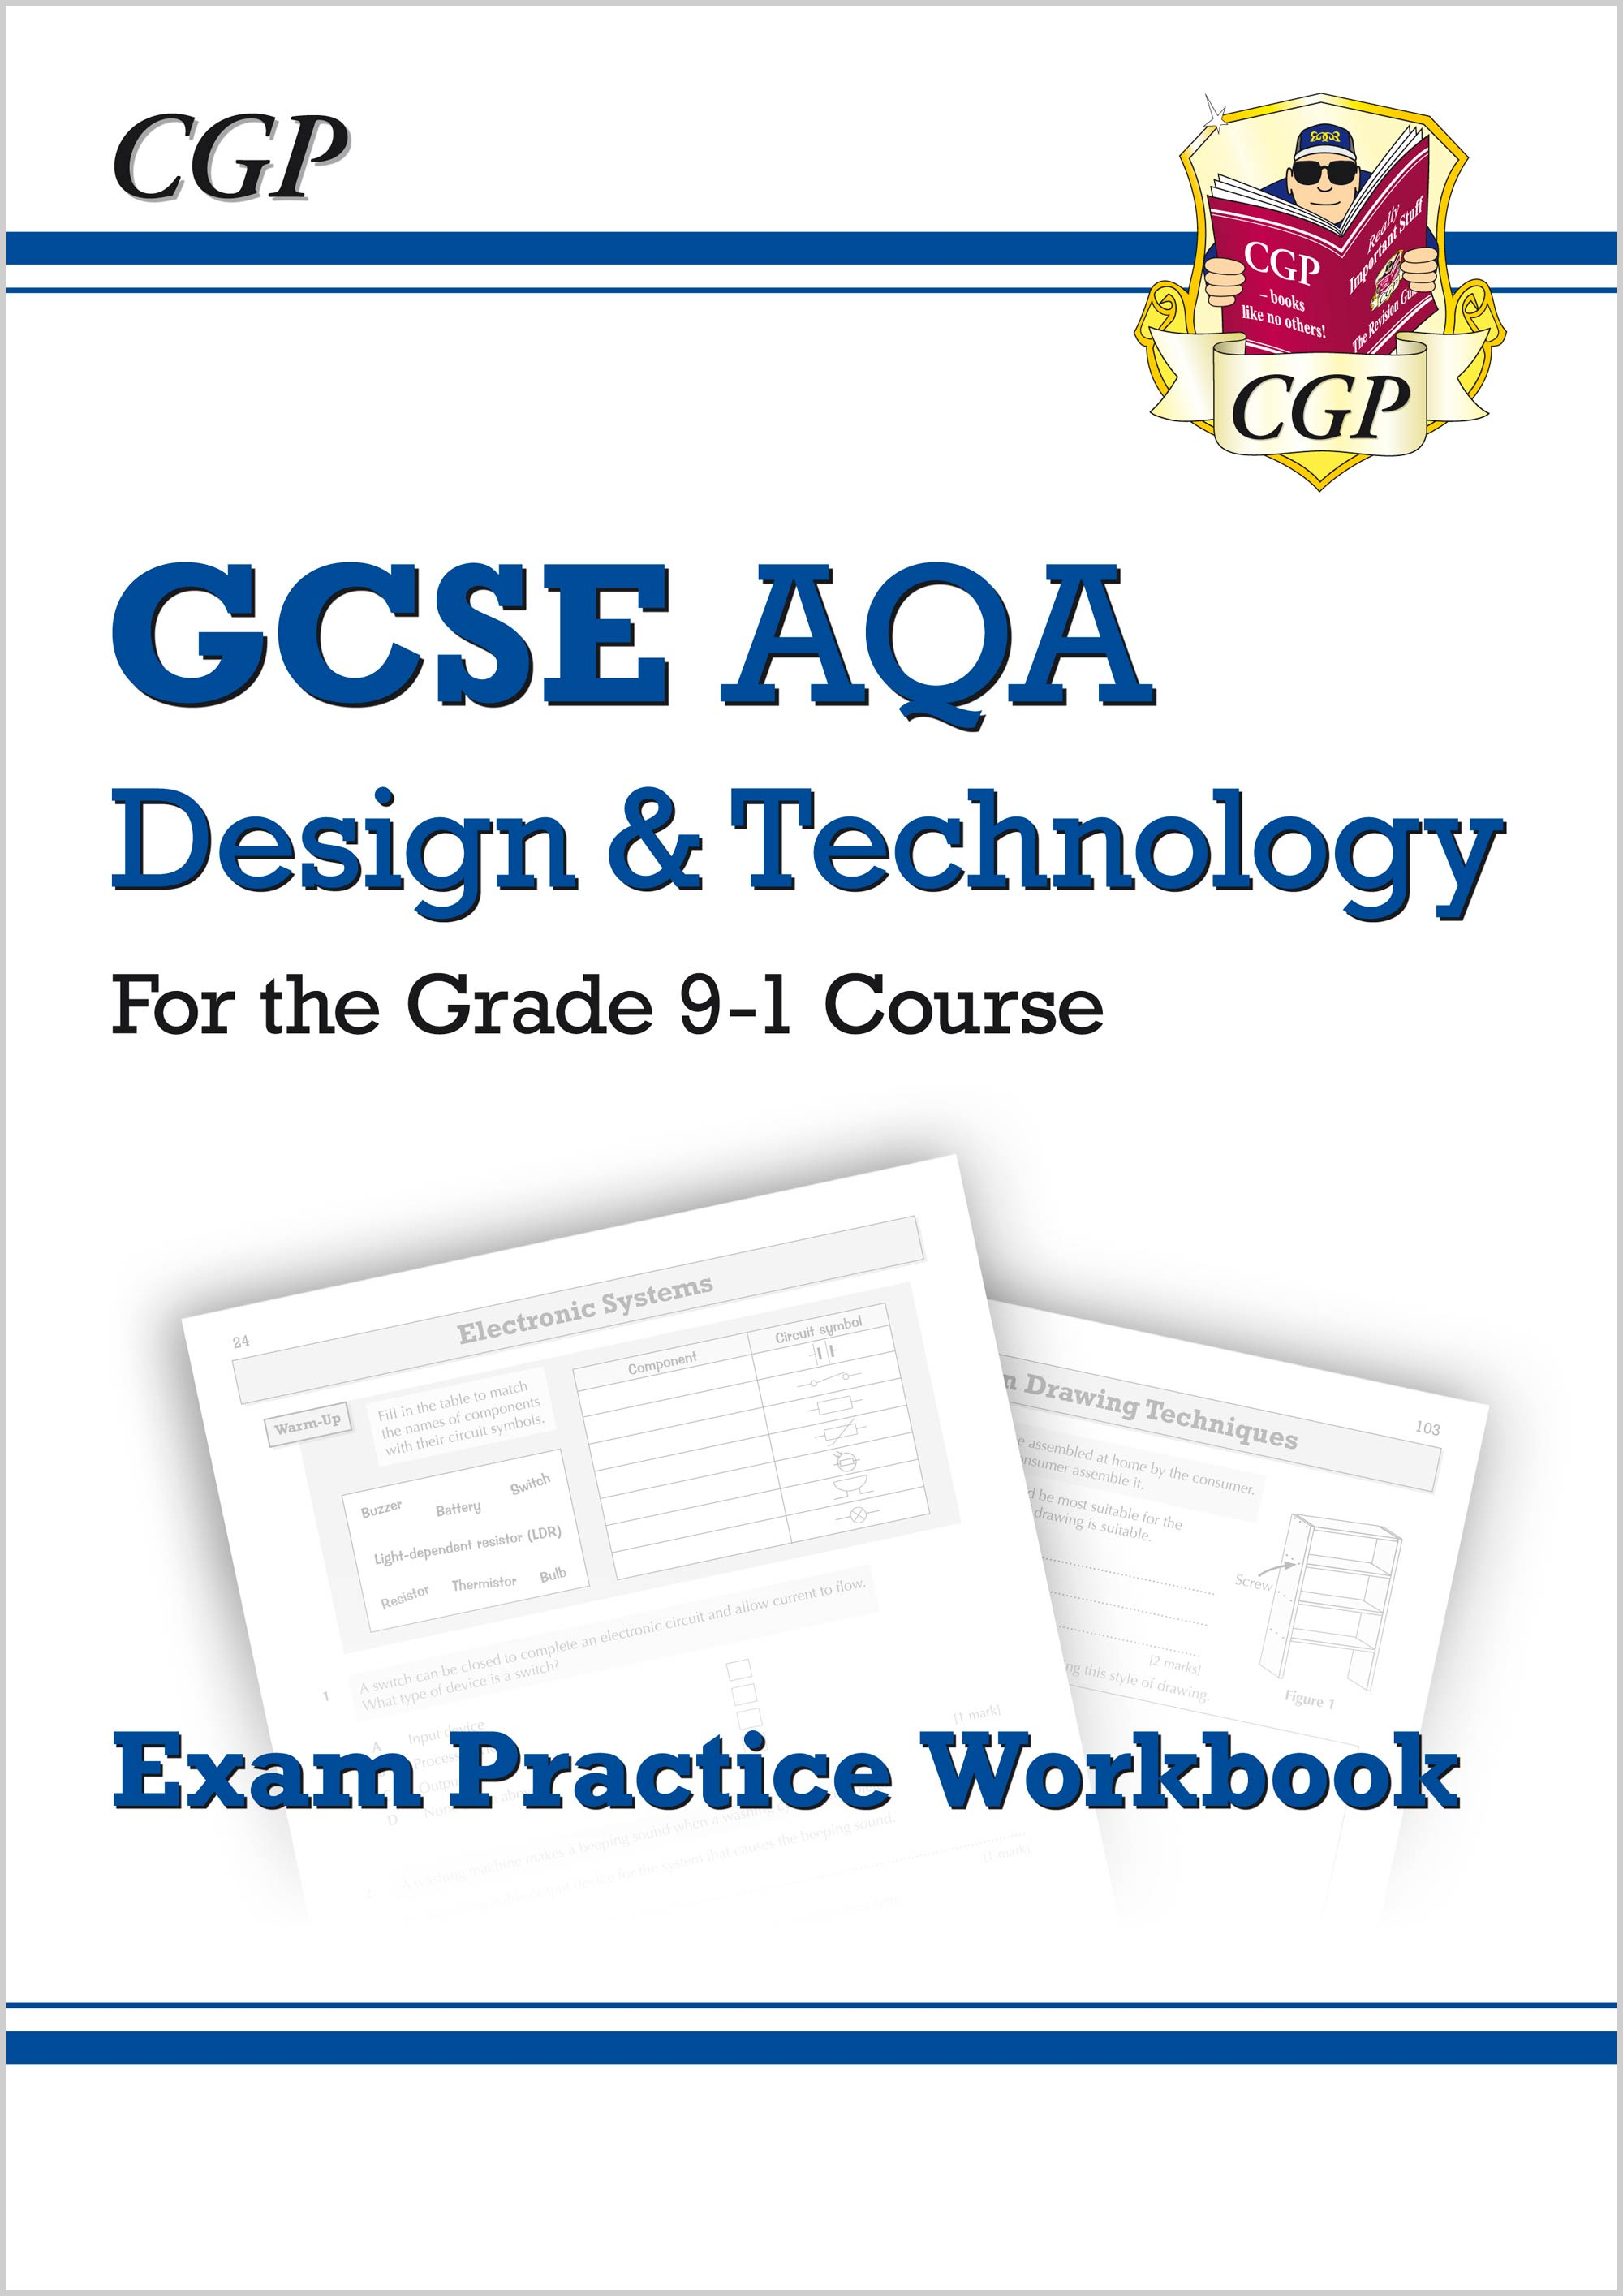 TAQ41 - New Grade 9-1 GCSE Design & Technology AQA Exam Practice Workbook